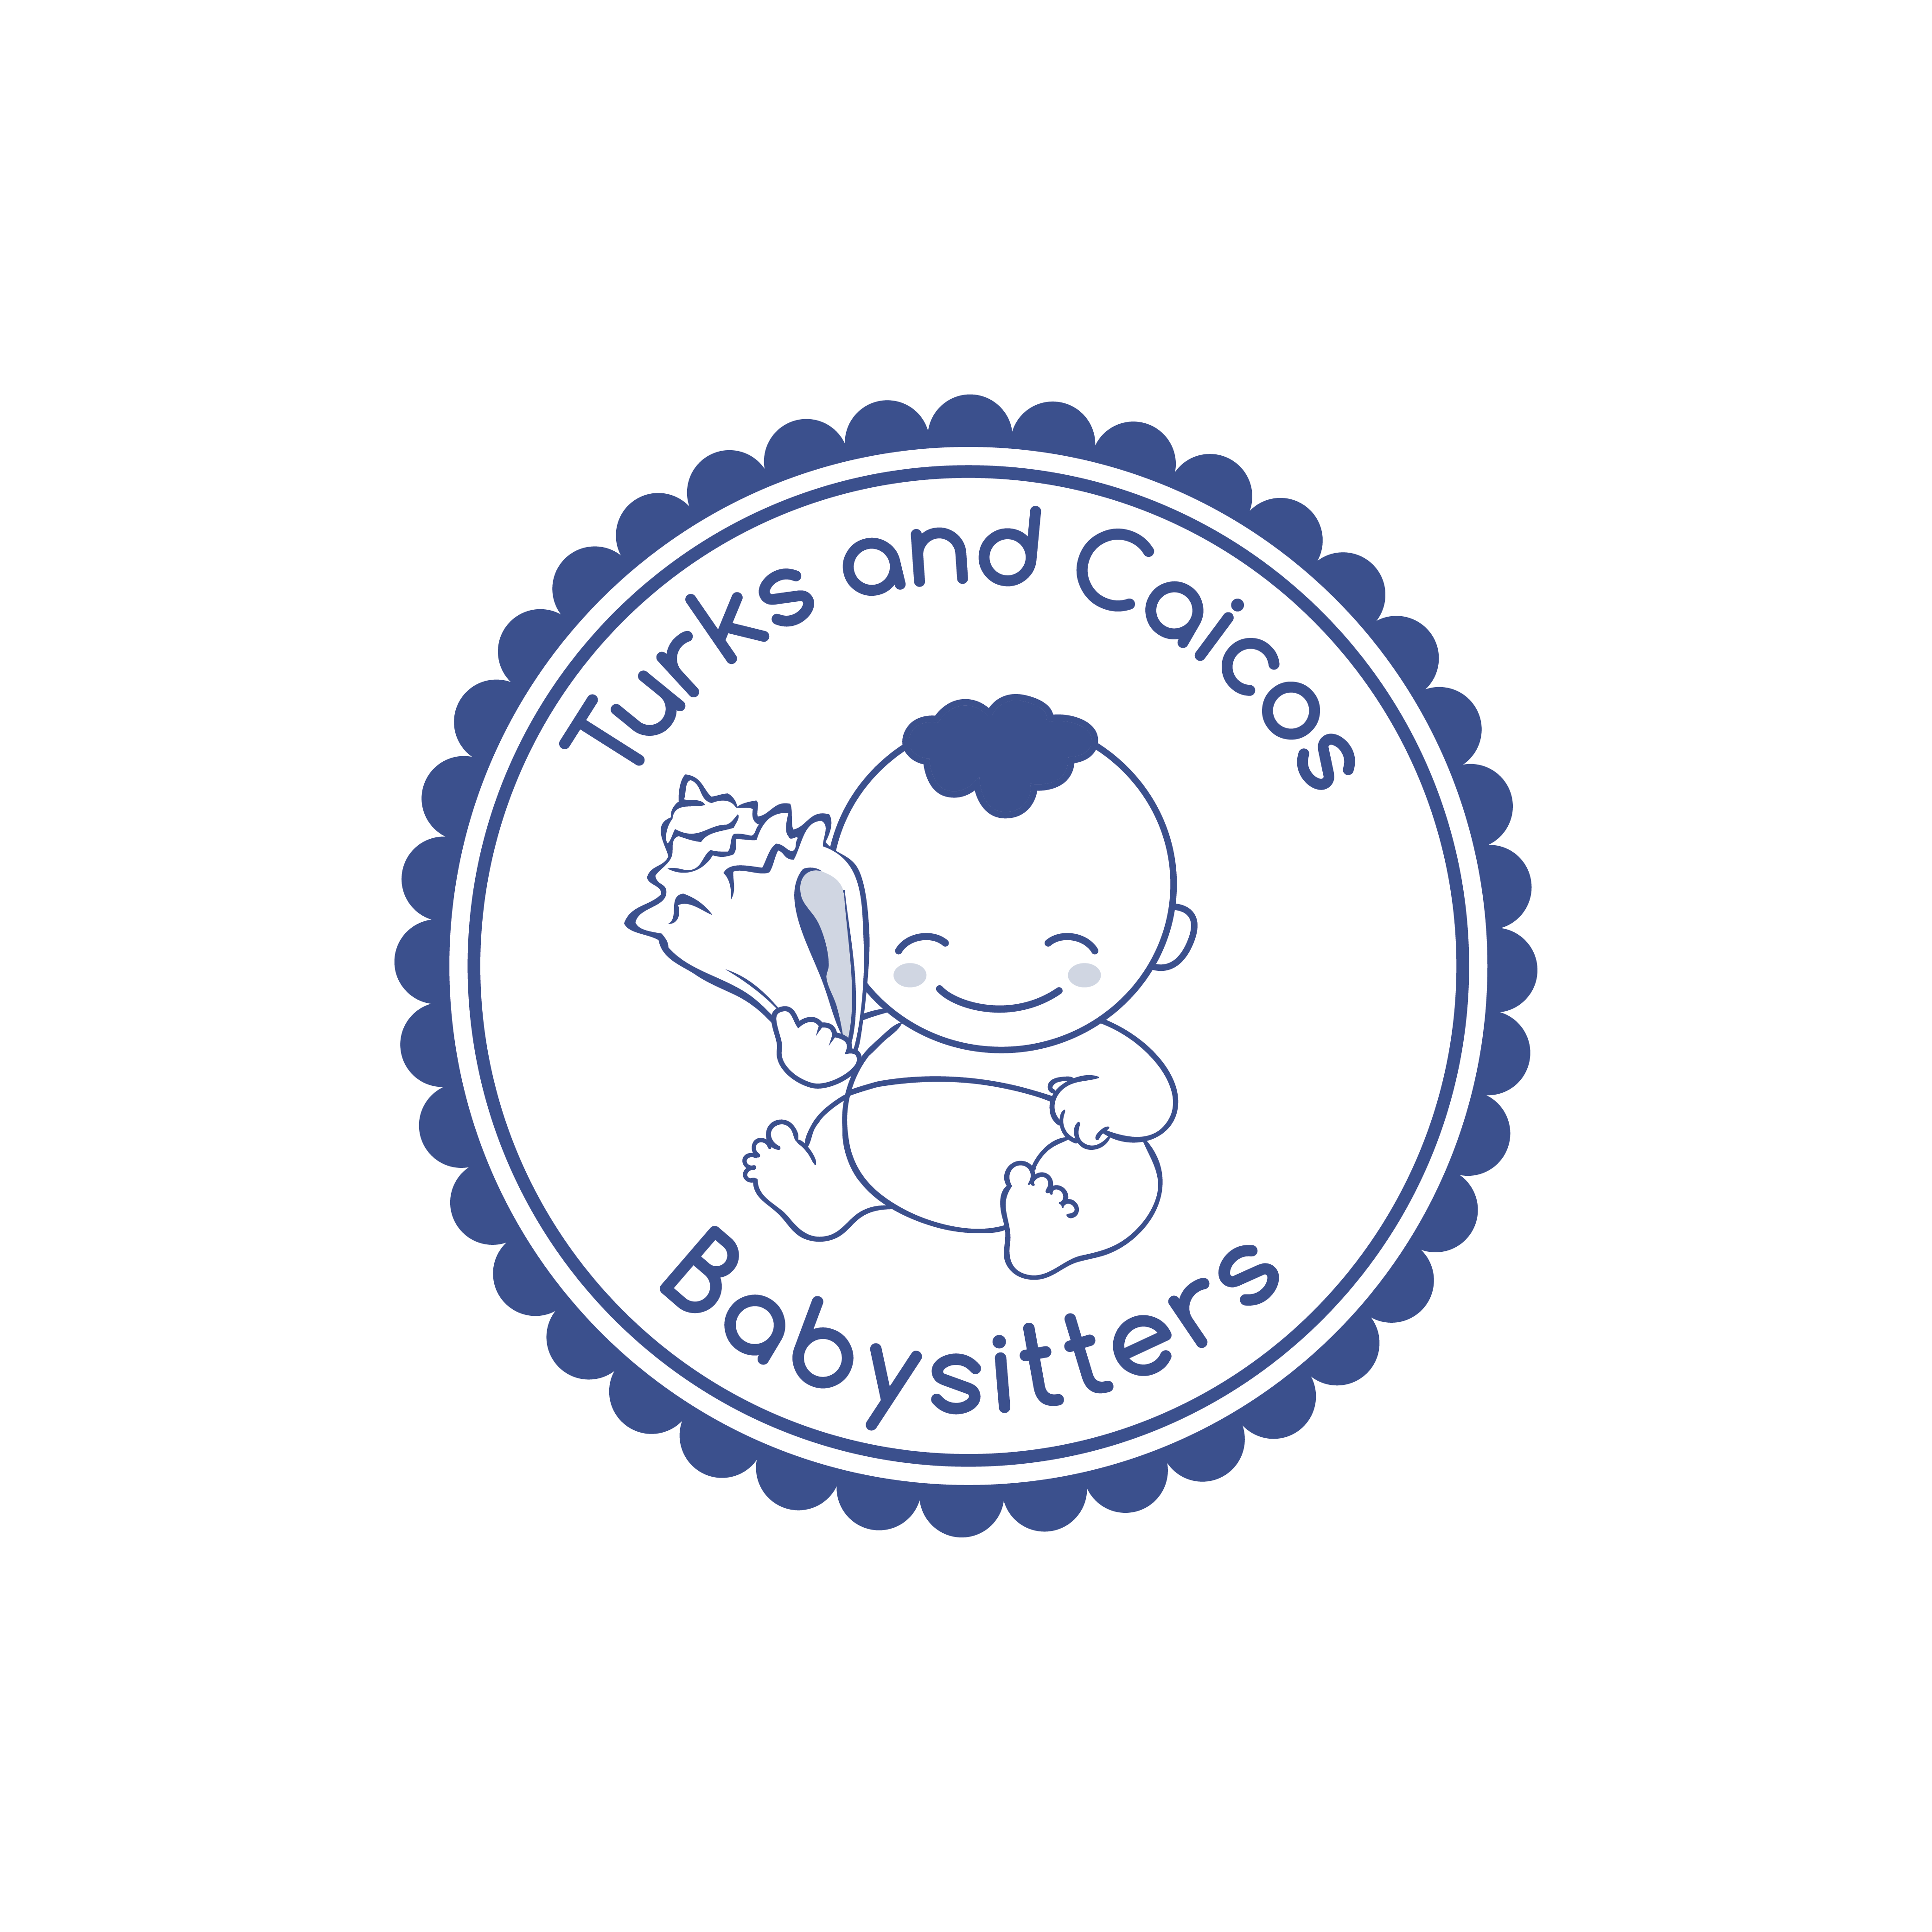 Create a logo of a baby holding a conch shell.